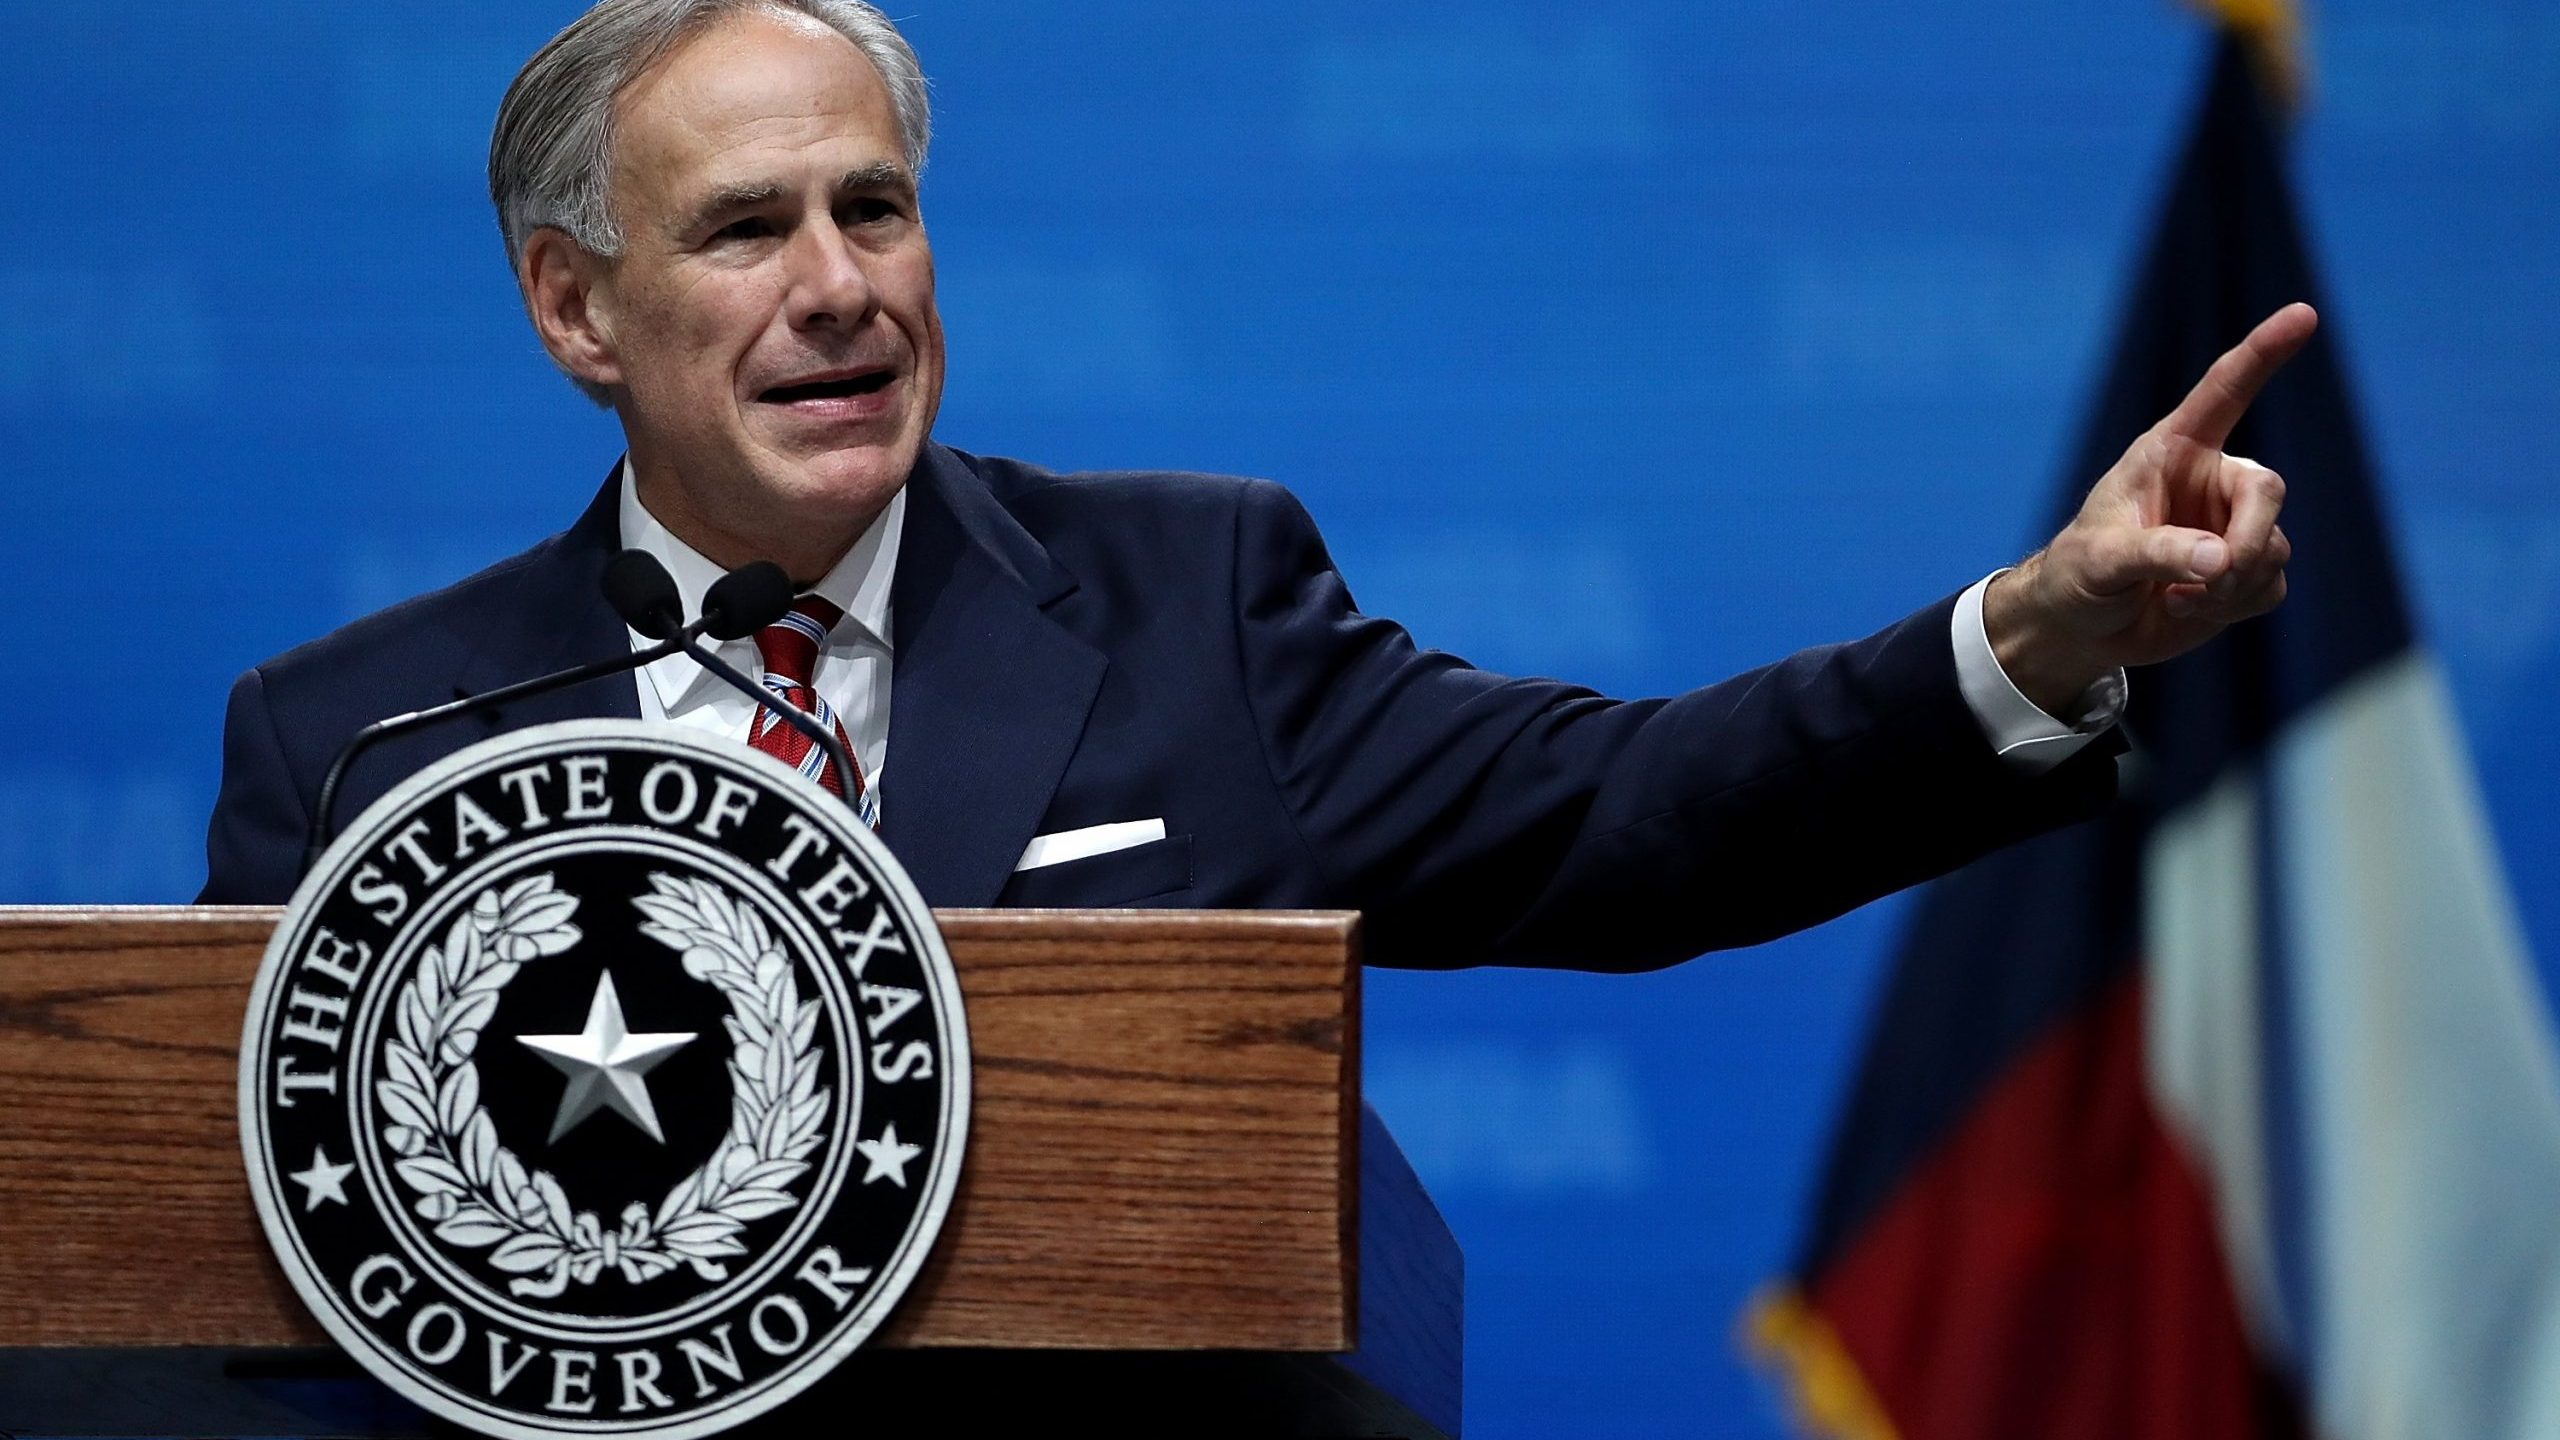 Texas Gov. Greg Abbott speaks at the NRA-ILA Leadership Forum at the Kay Bailey Hutchison Convention Center on May 4, 2018 in Dallas, Texas. (Credit: Justin Sullivan/Getty Images)